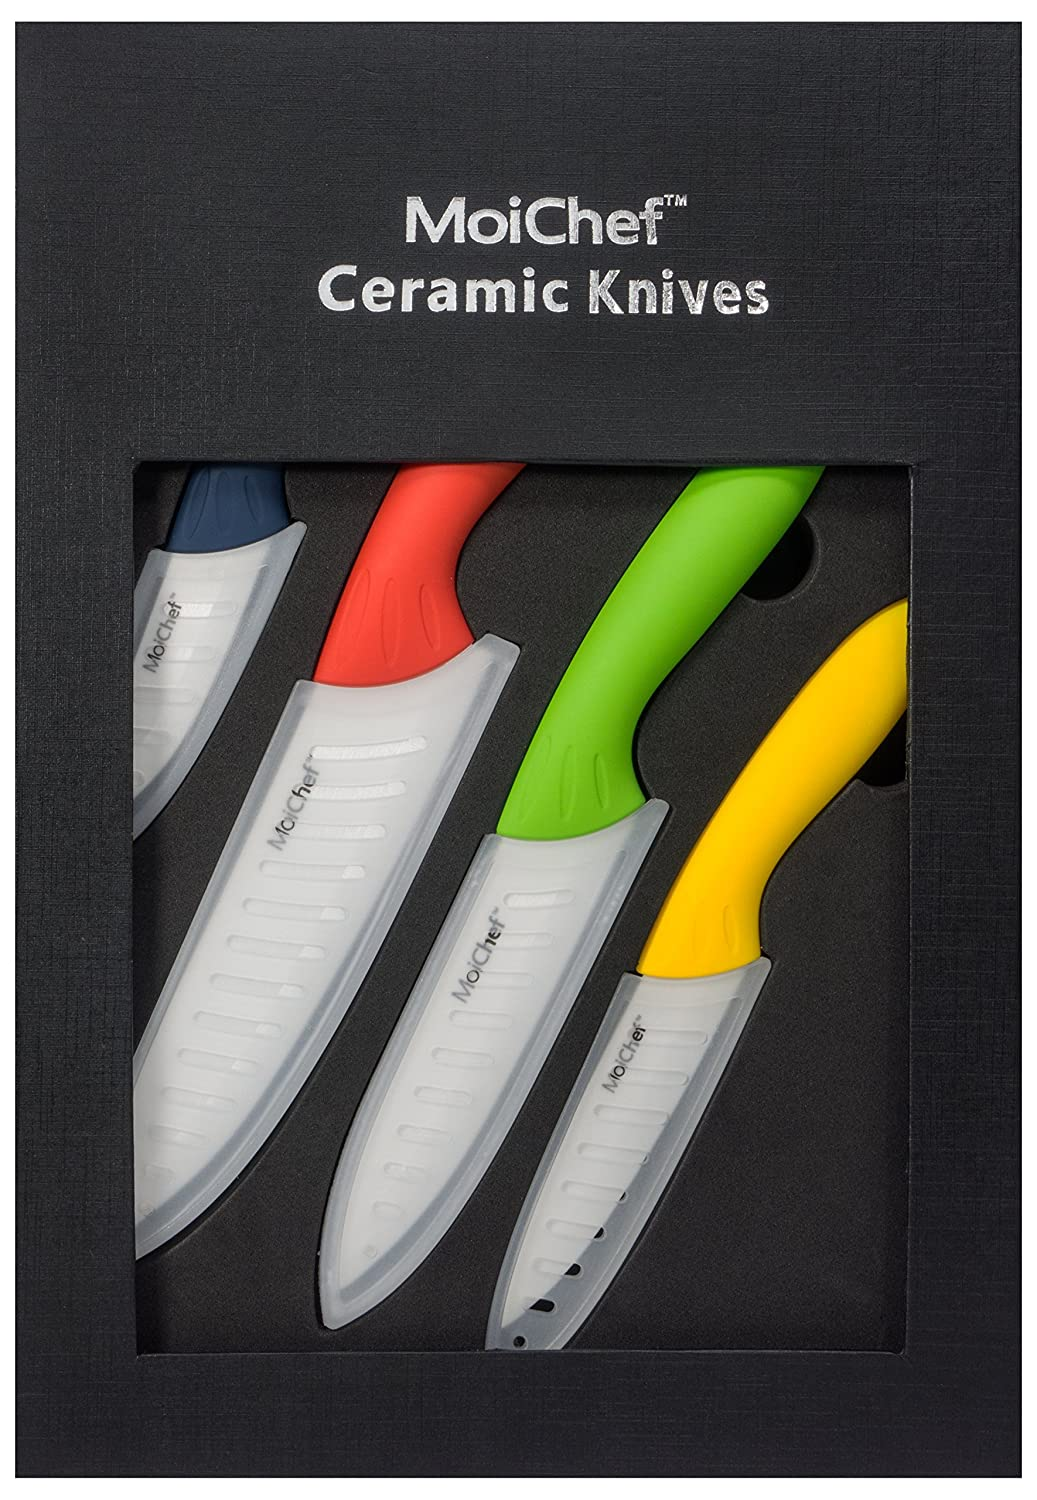 amazon com moichef 8 piece premium ceramic knife set 4 color amazon com moichef 8 piece premium ceramic knife set 4 color kitchen knives with white sheaths in gift box kitchen dining